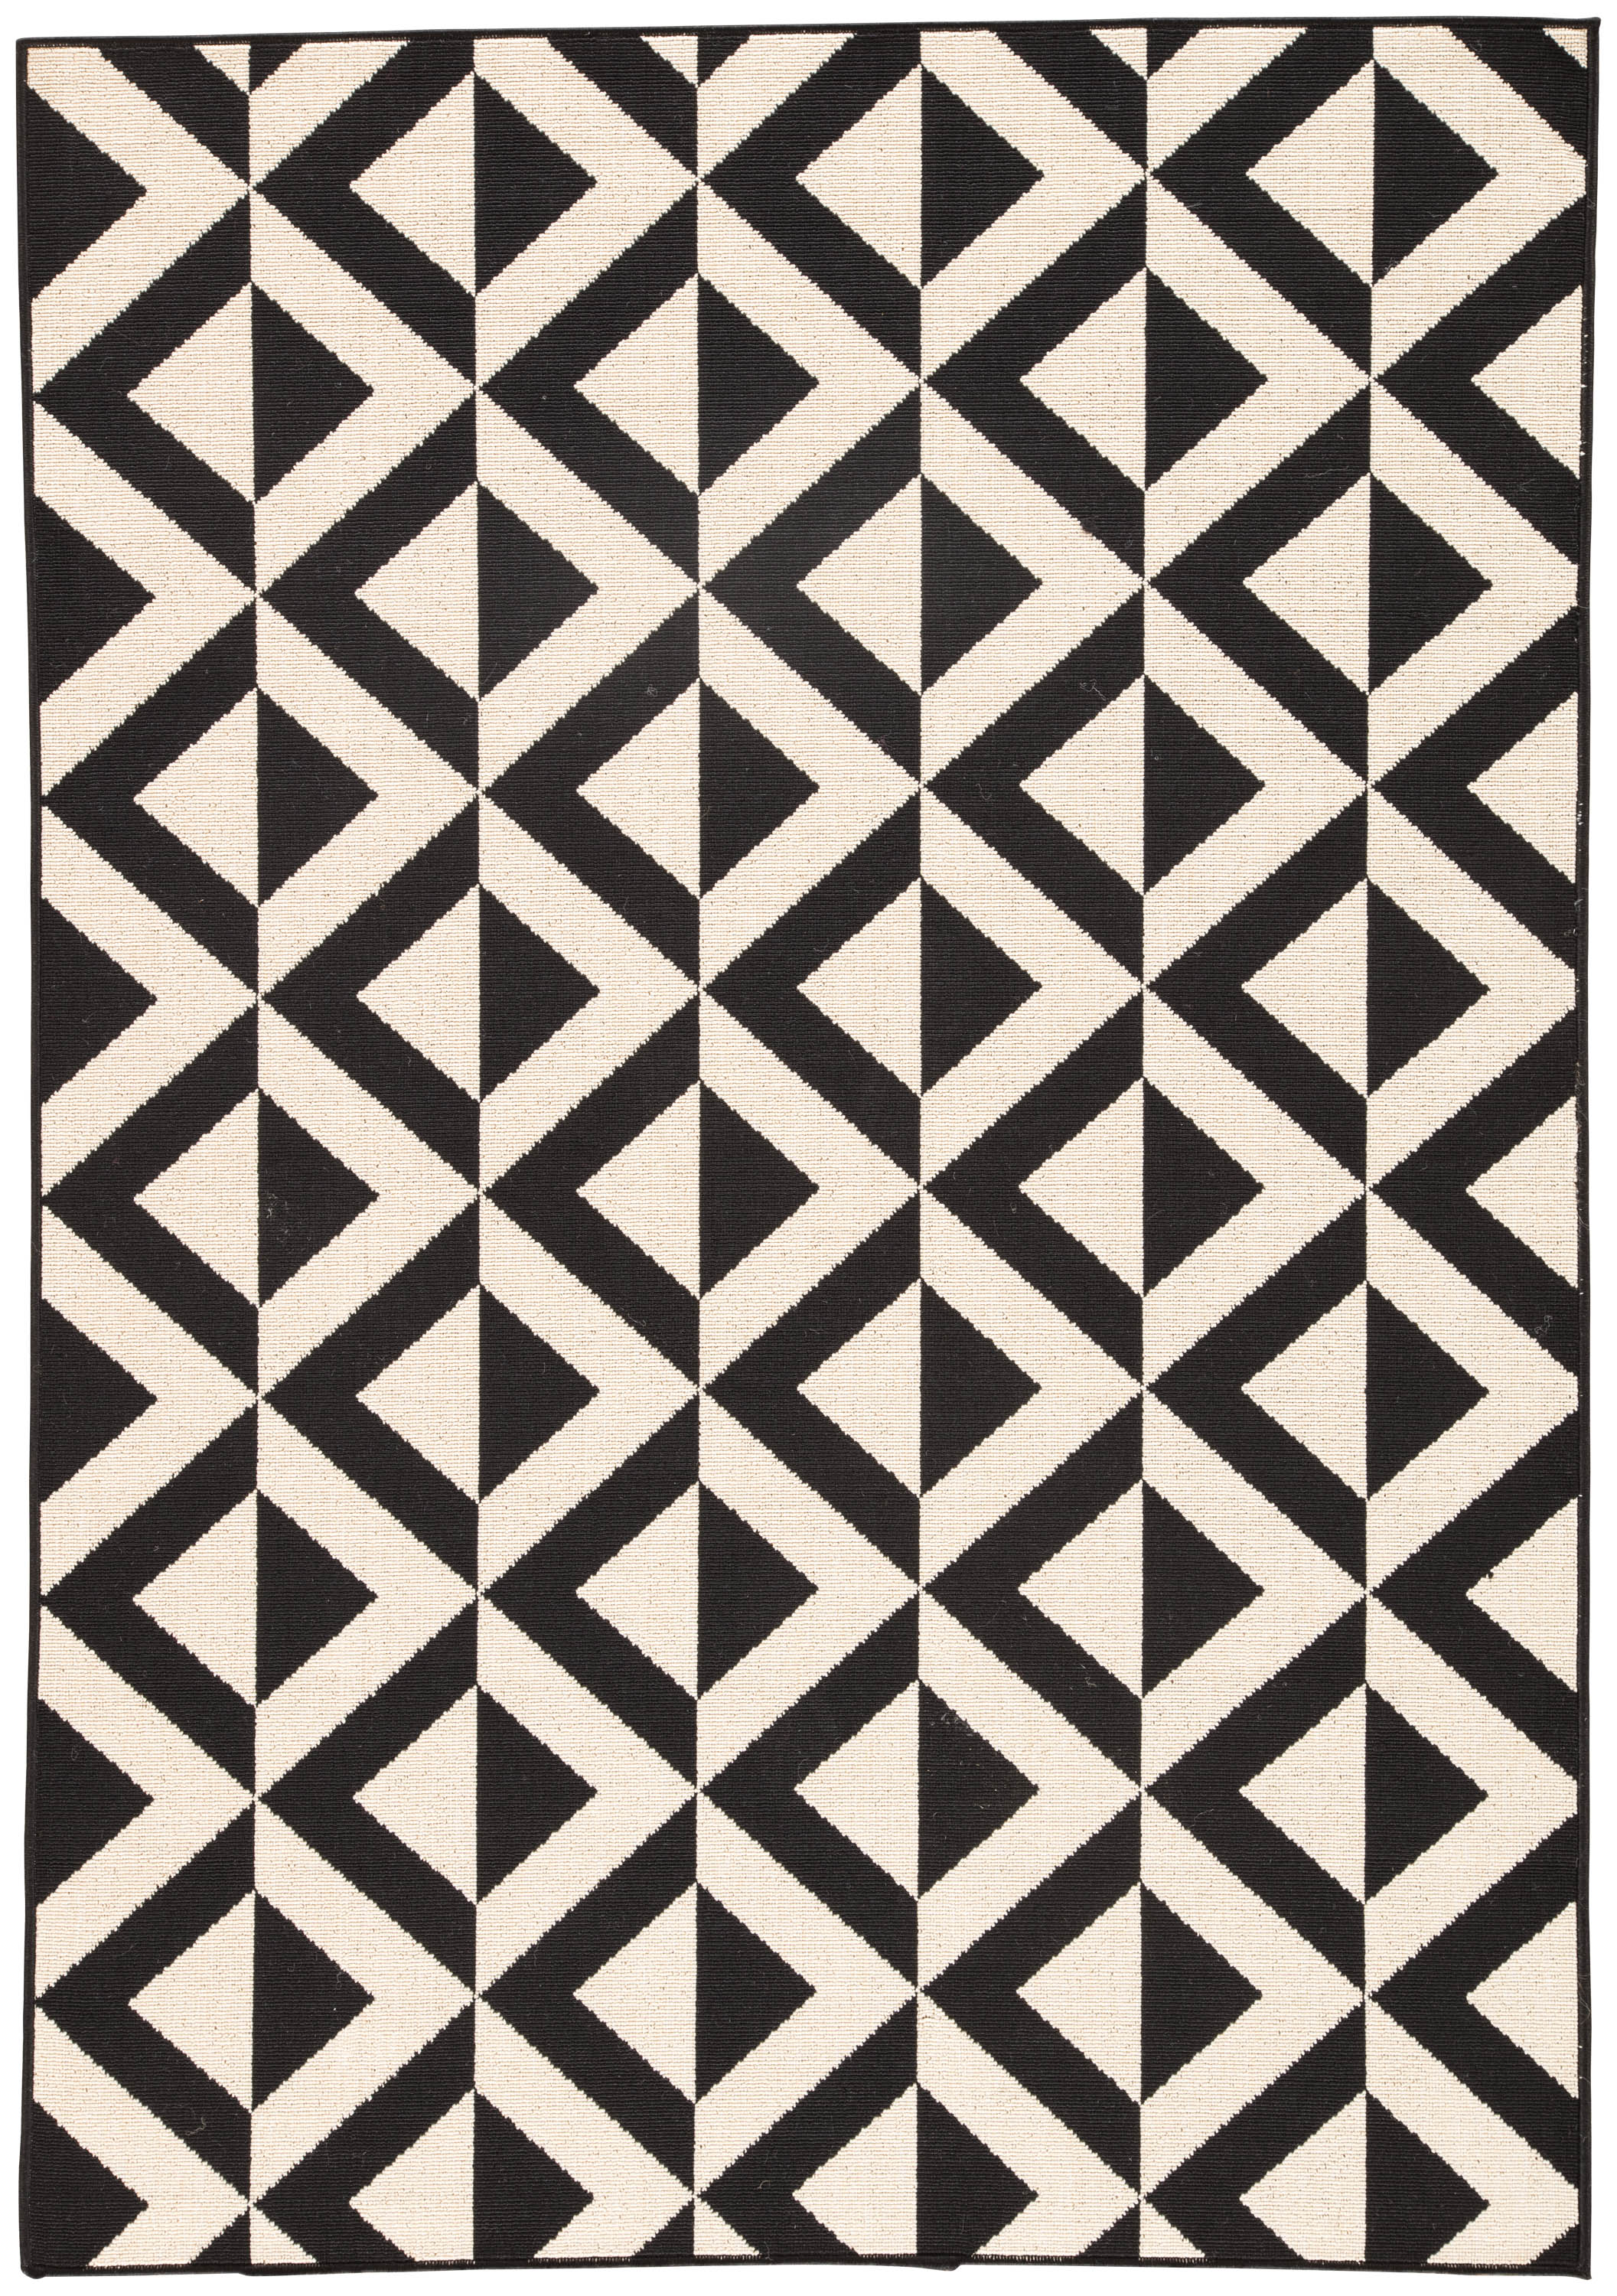 Marquise Indoor Outdoor Geometric Black Cream Area Rug Burke Decor